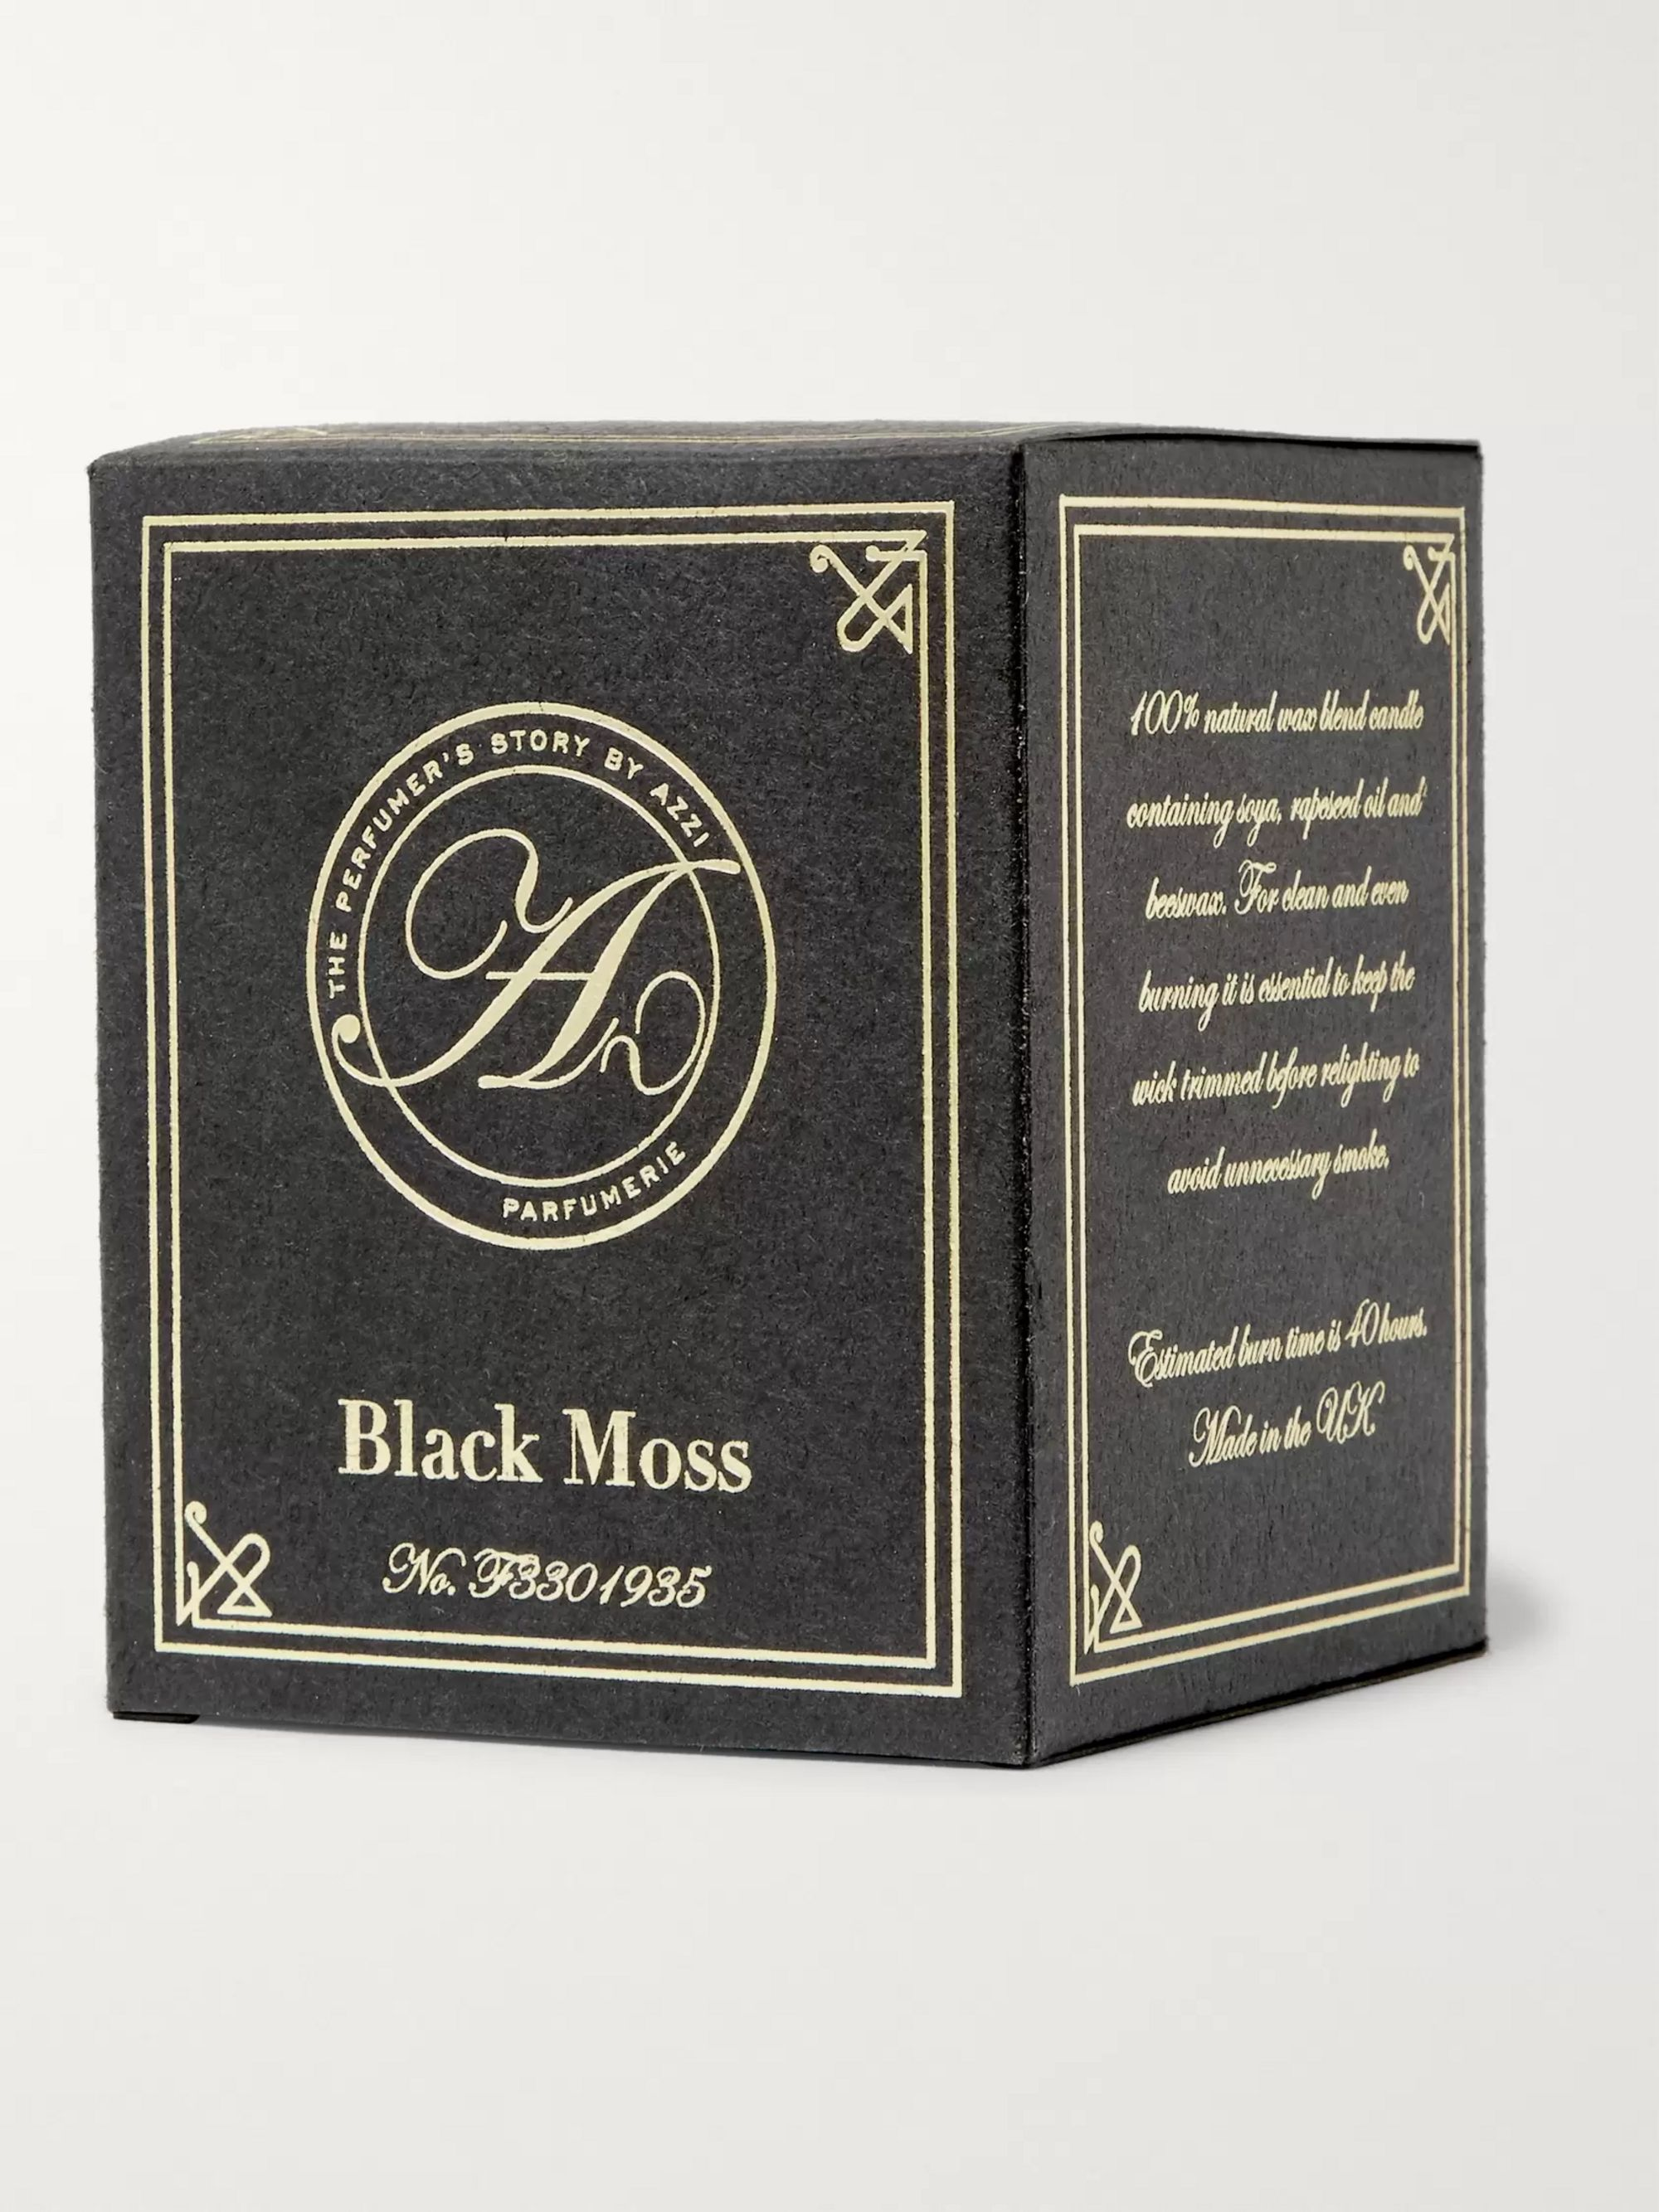 The Perfumer's Story by Azzi Glasser Black Moss Scented Candle, 180g